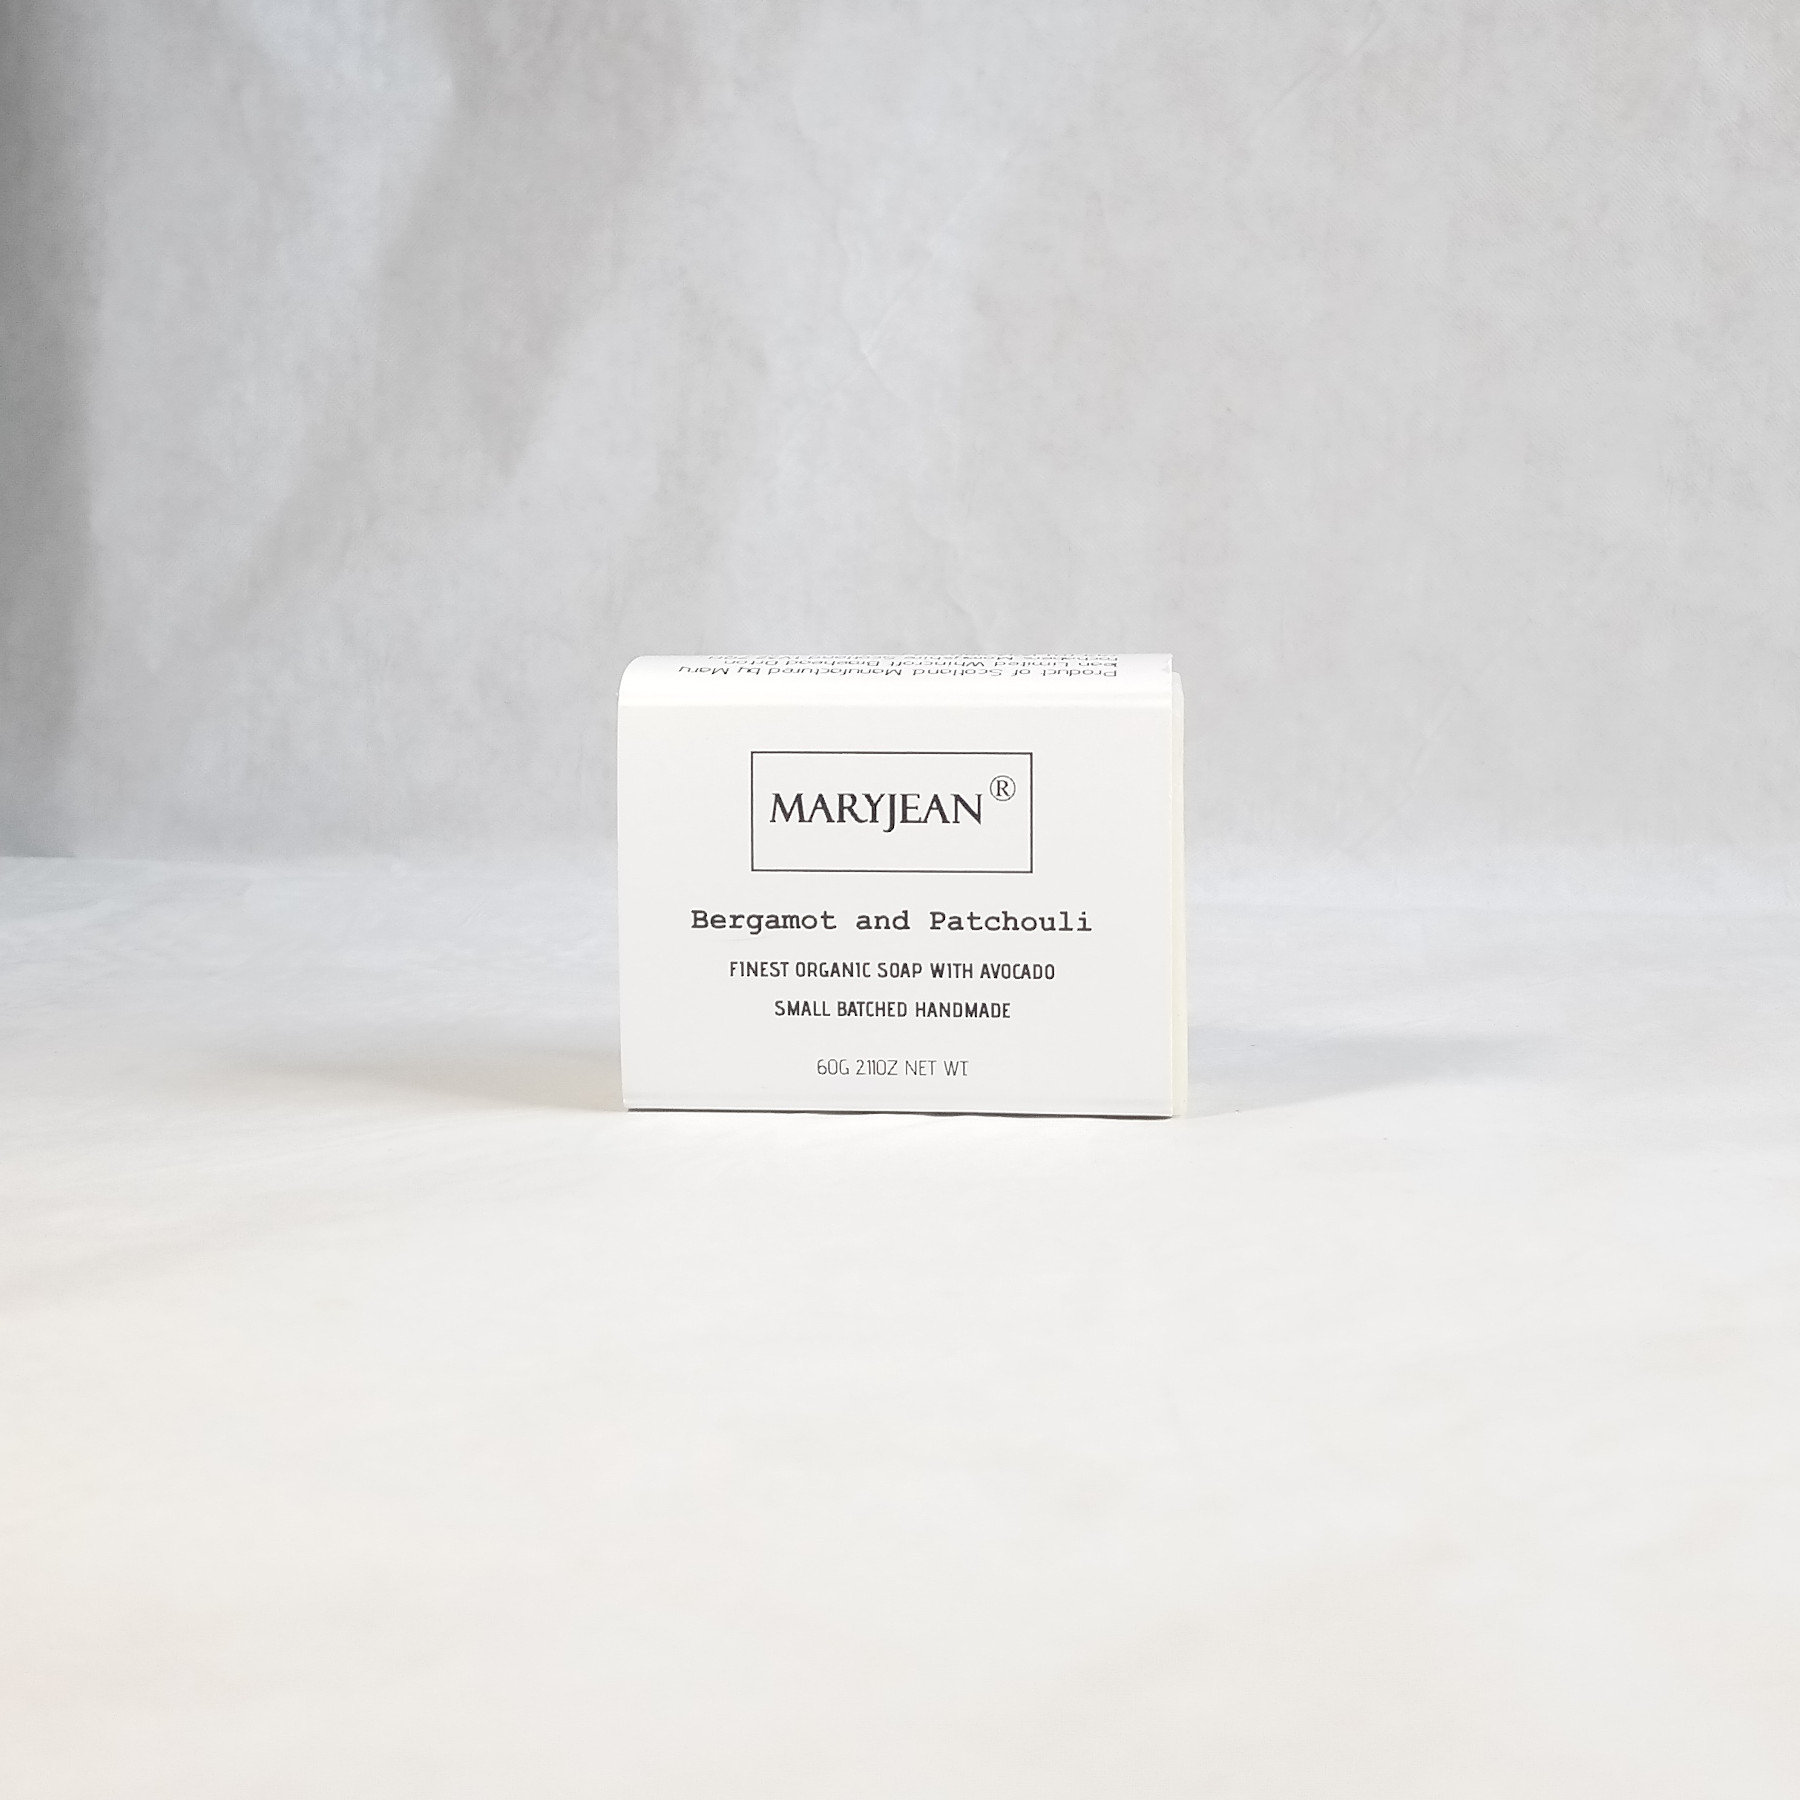 Travel size Organic Scottish Bergamot Patchouli Soap Handmade with Avocado Cocoa butter excellent for reducing wrinkles and stretch marks use regularly for excellent skin firming results